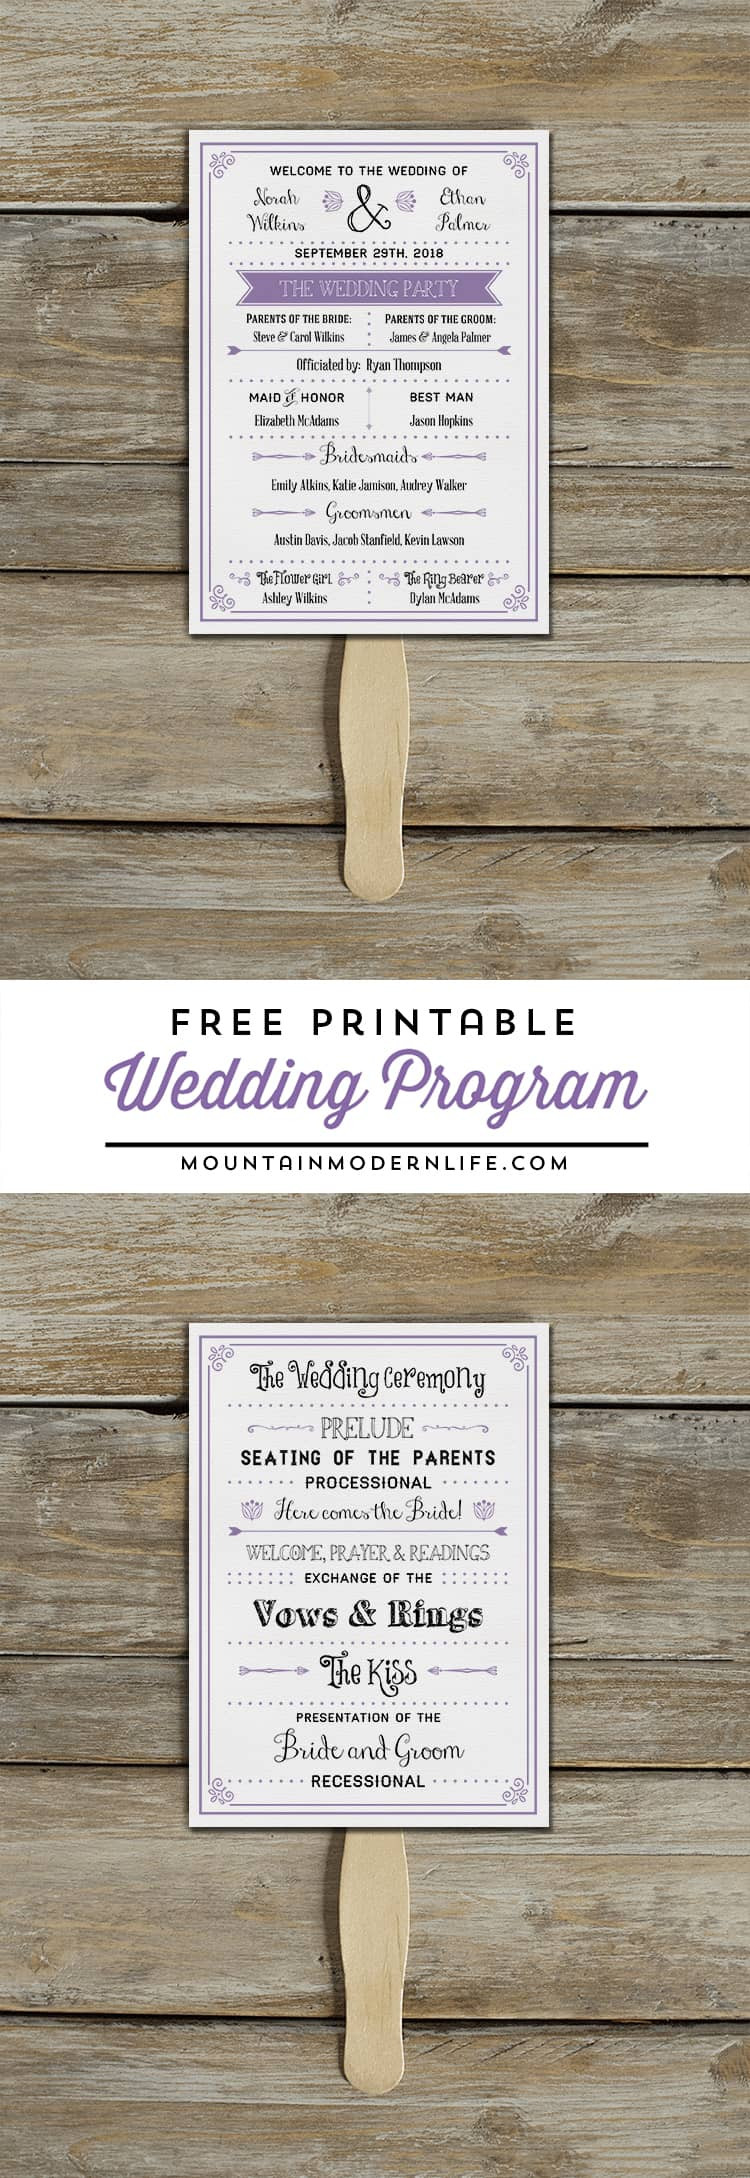 Wedding Program Template Download